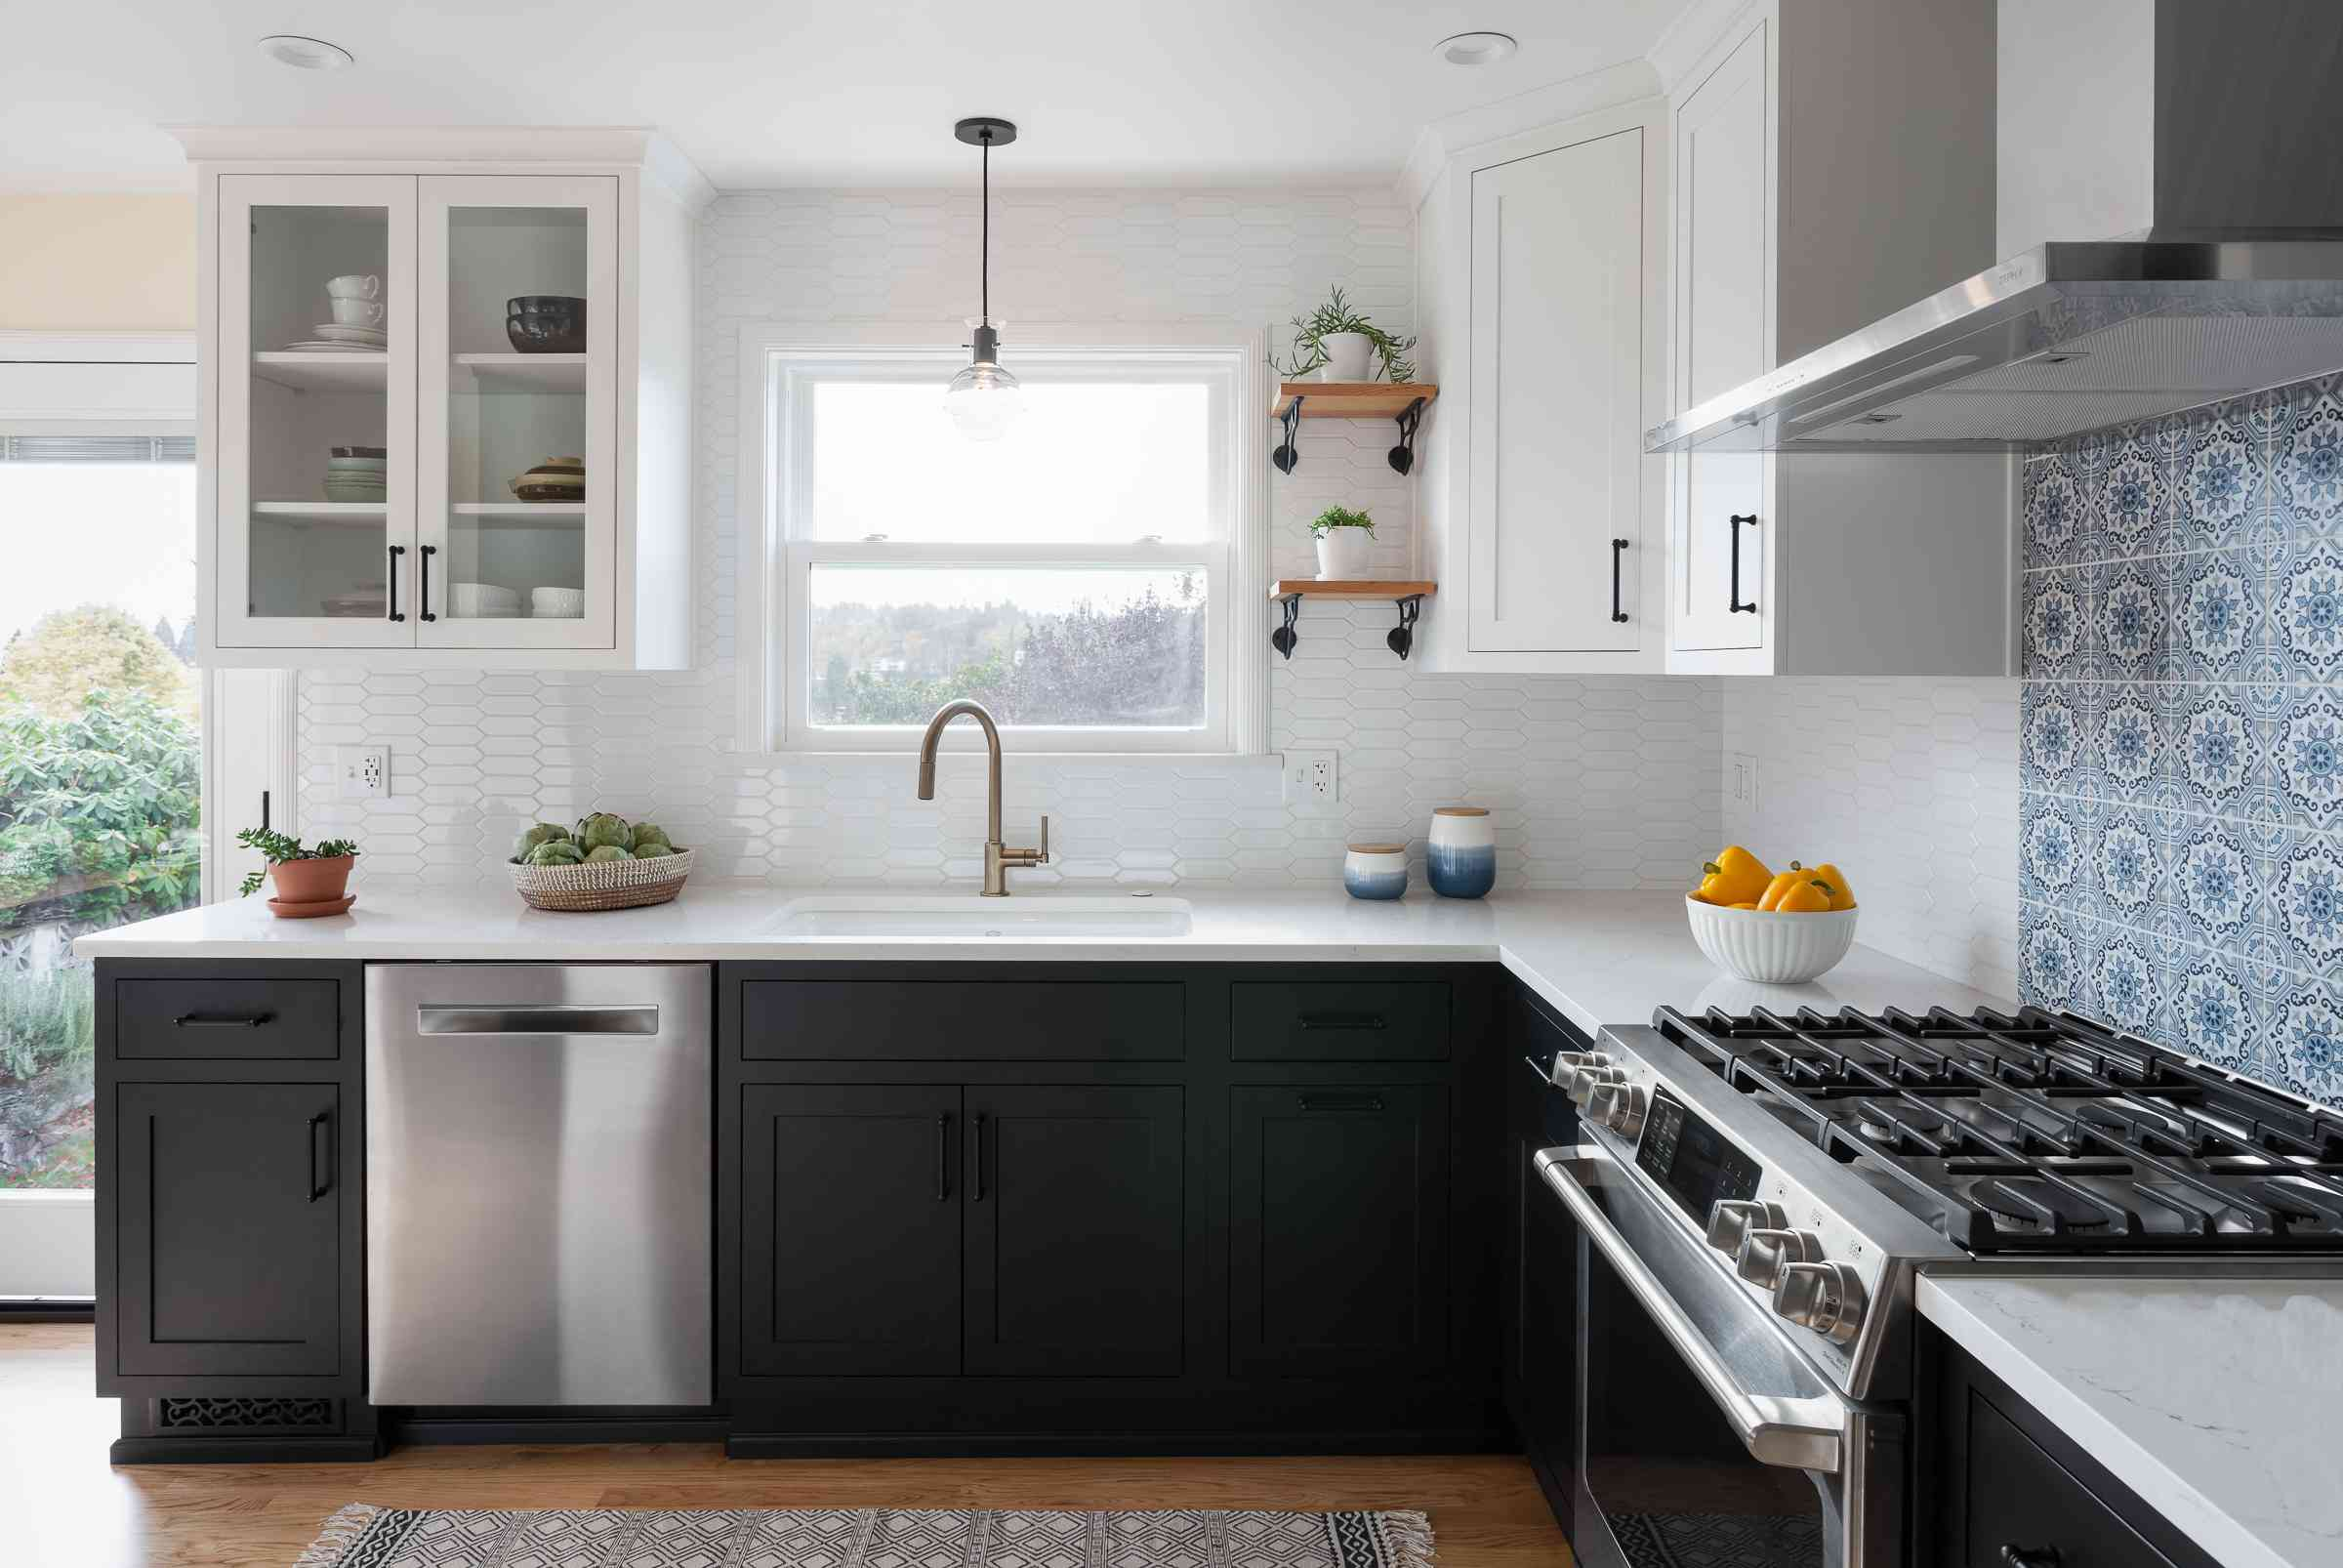 A kitchen with black lower cabinets, white uppers, and a blue stove backsplash